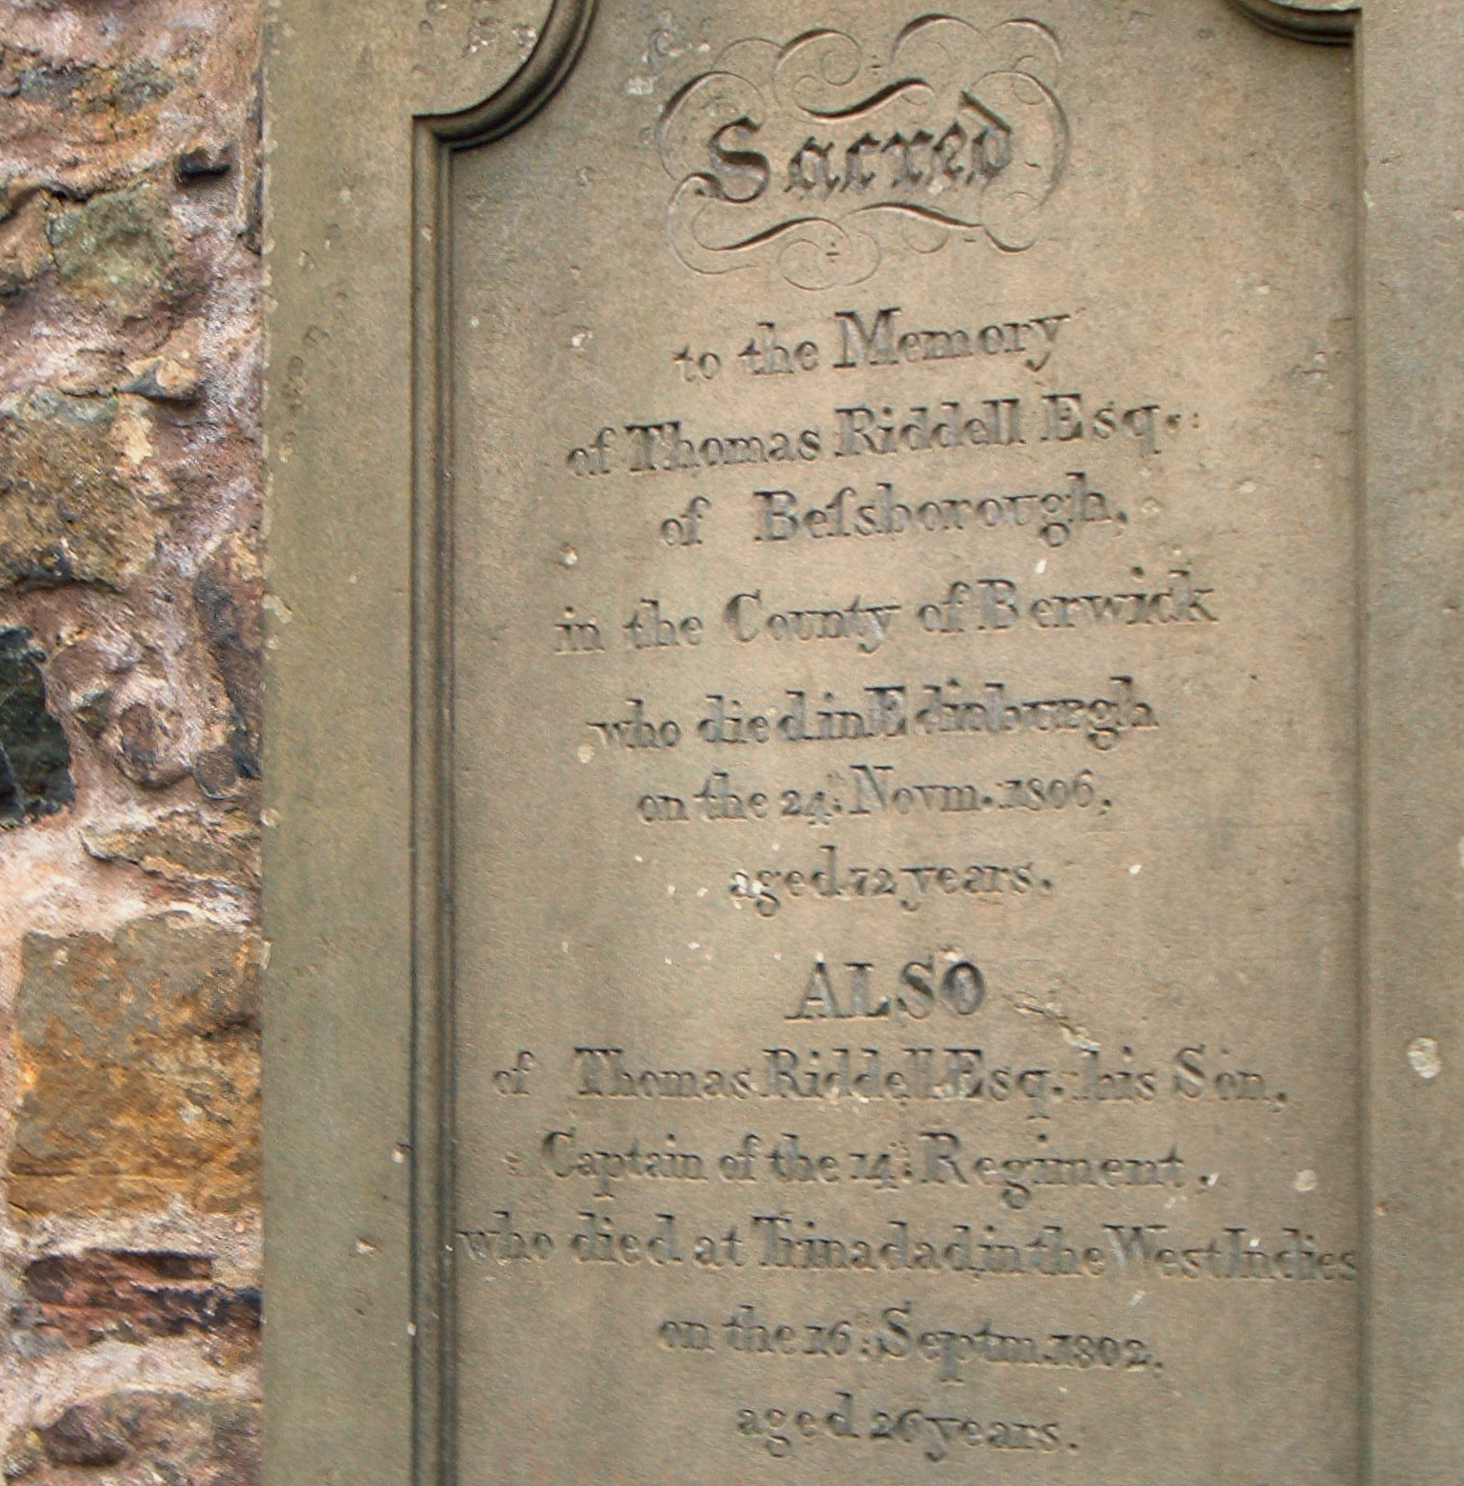 Tom Riddle's tombstone